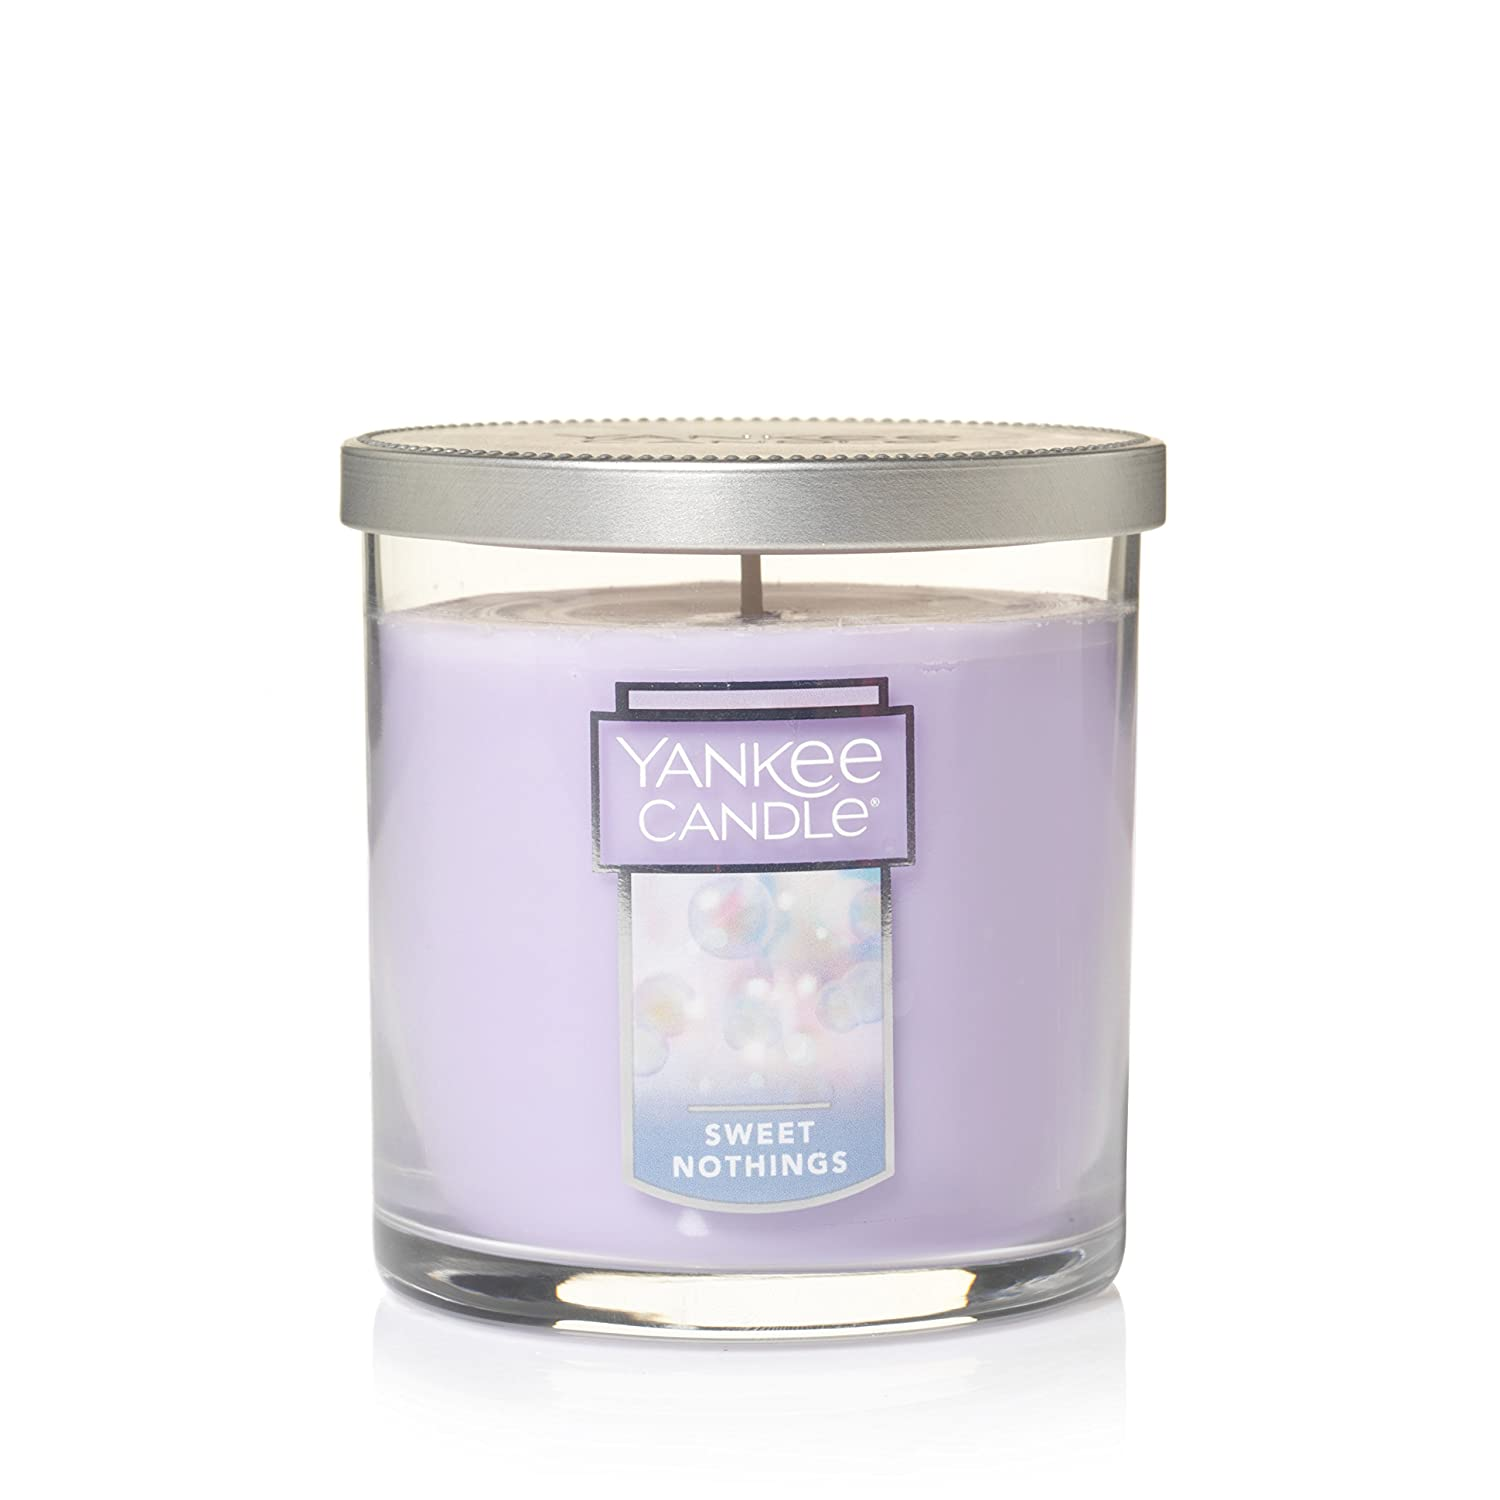 Yankee Candle Large 2-Wick Tumbler Candle Pink Sands